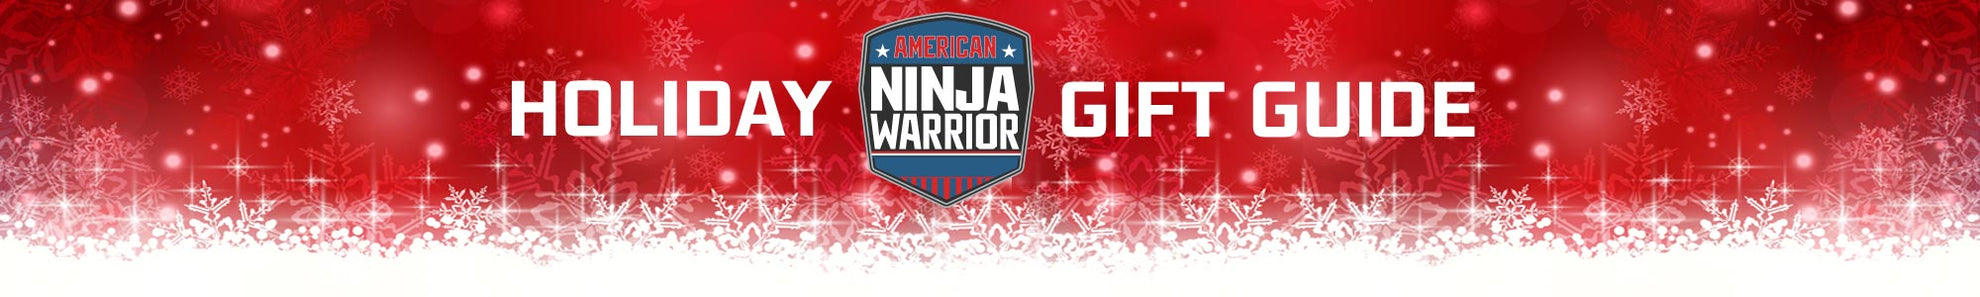 American Ninja Warrior Holiday Gift Guide